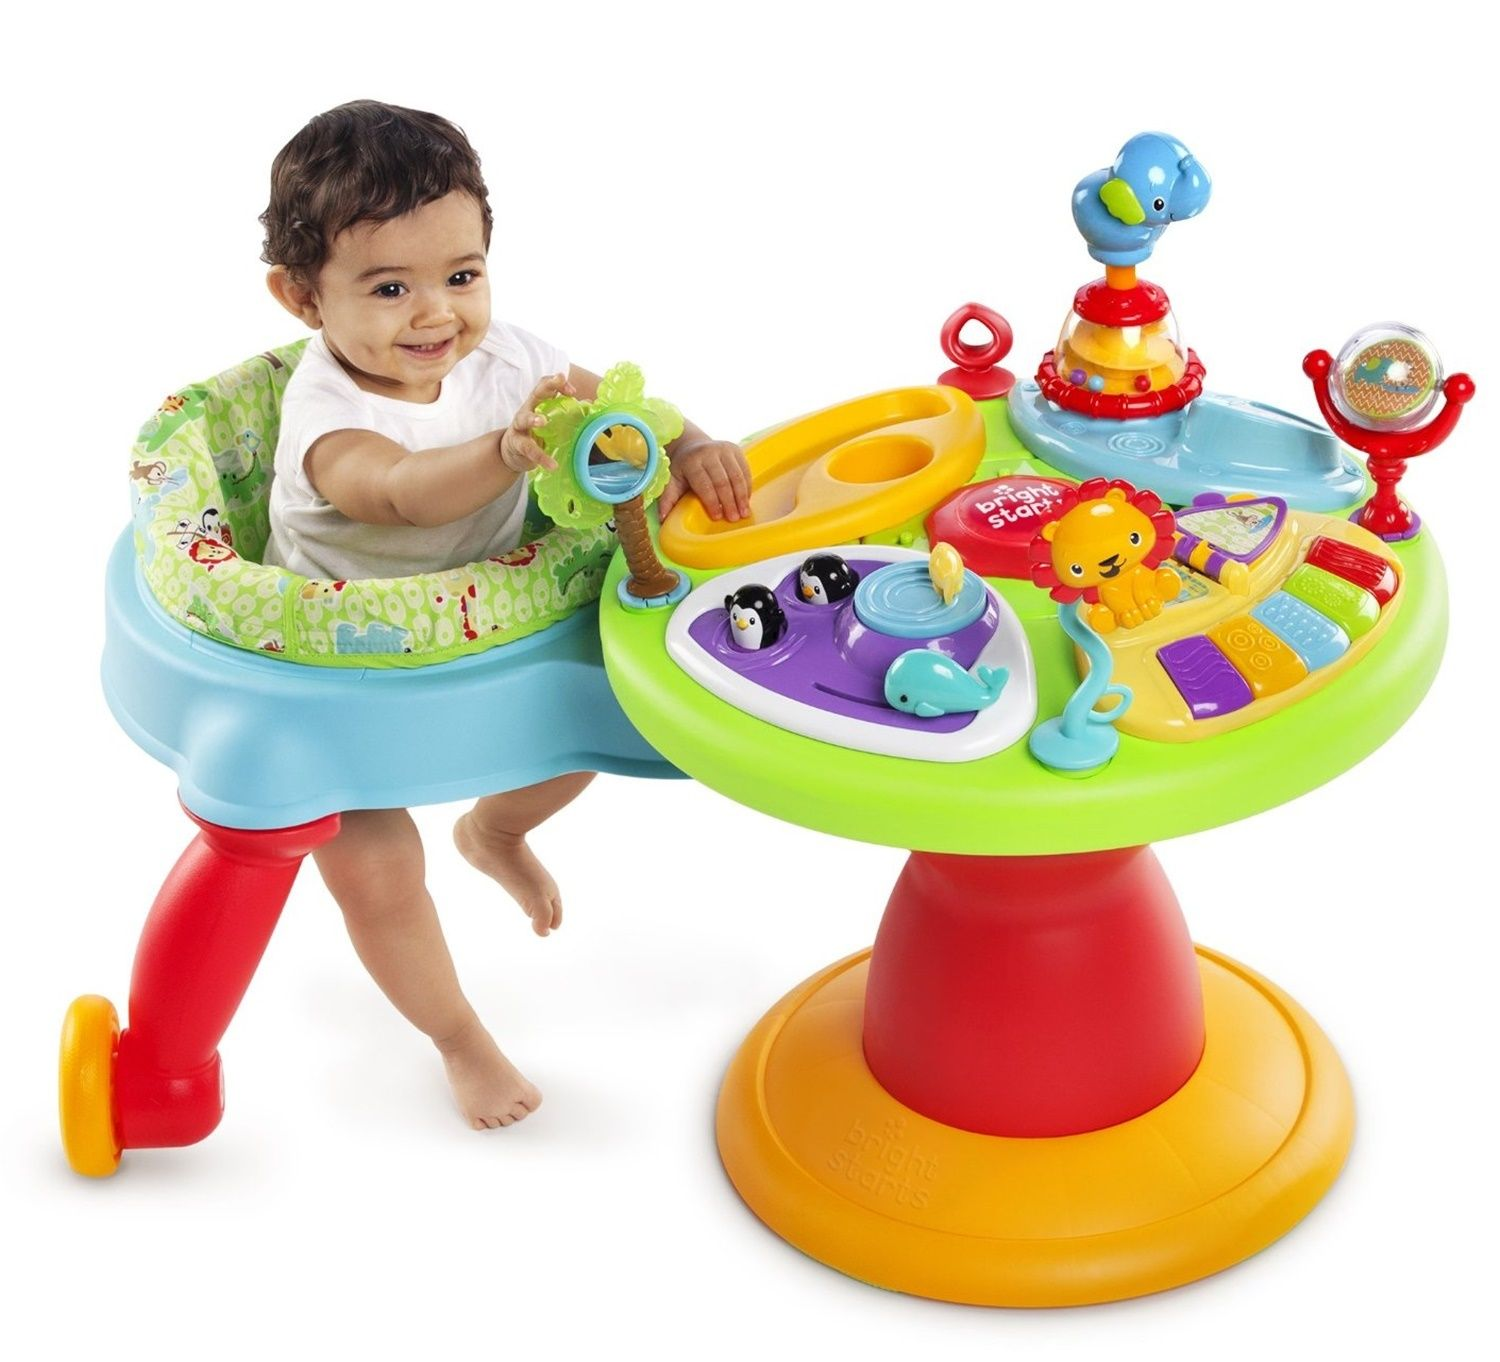 This Zippity Zoo Around We Go Baby Walker is an award winning